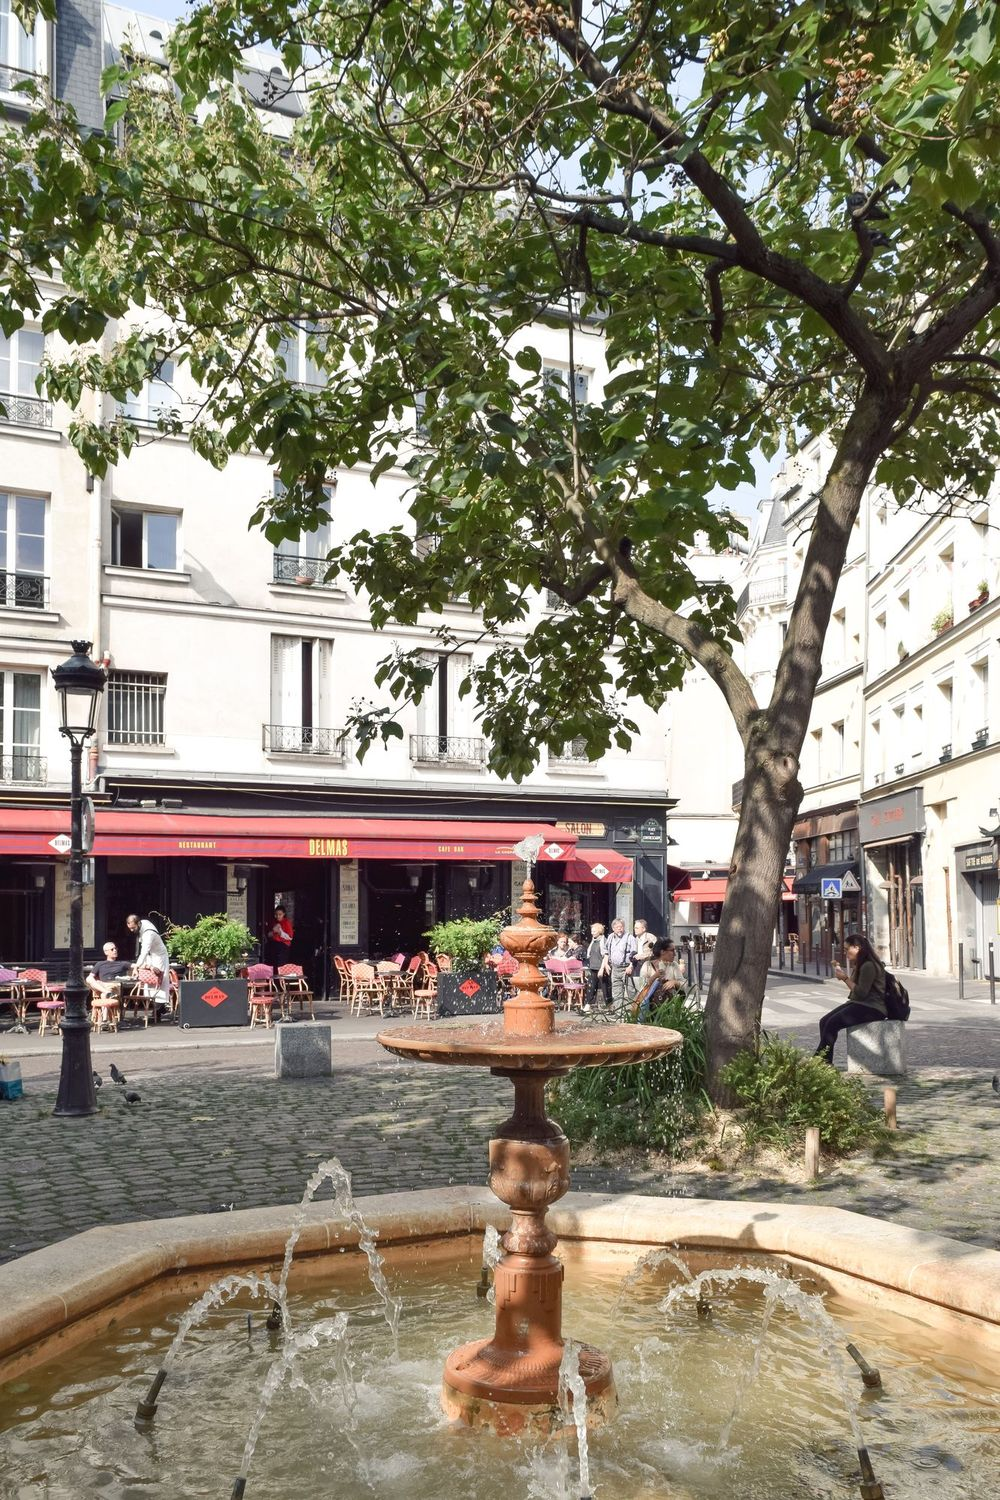 Place De La Contrescarpe, Latin Quarter, Paris, France